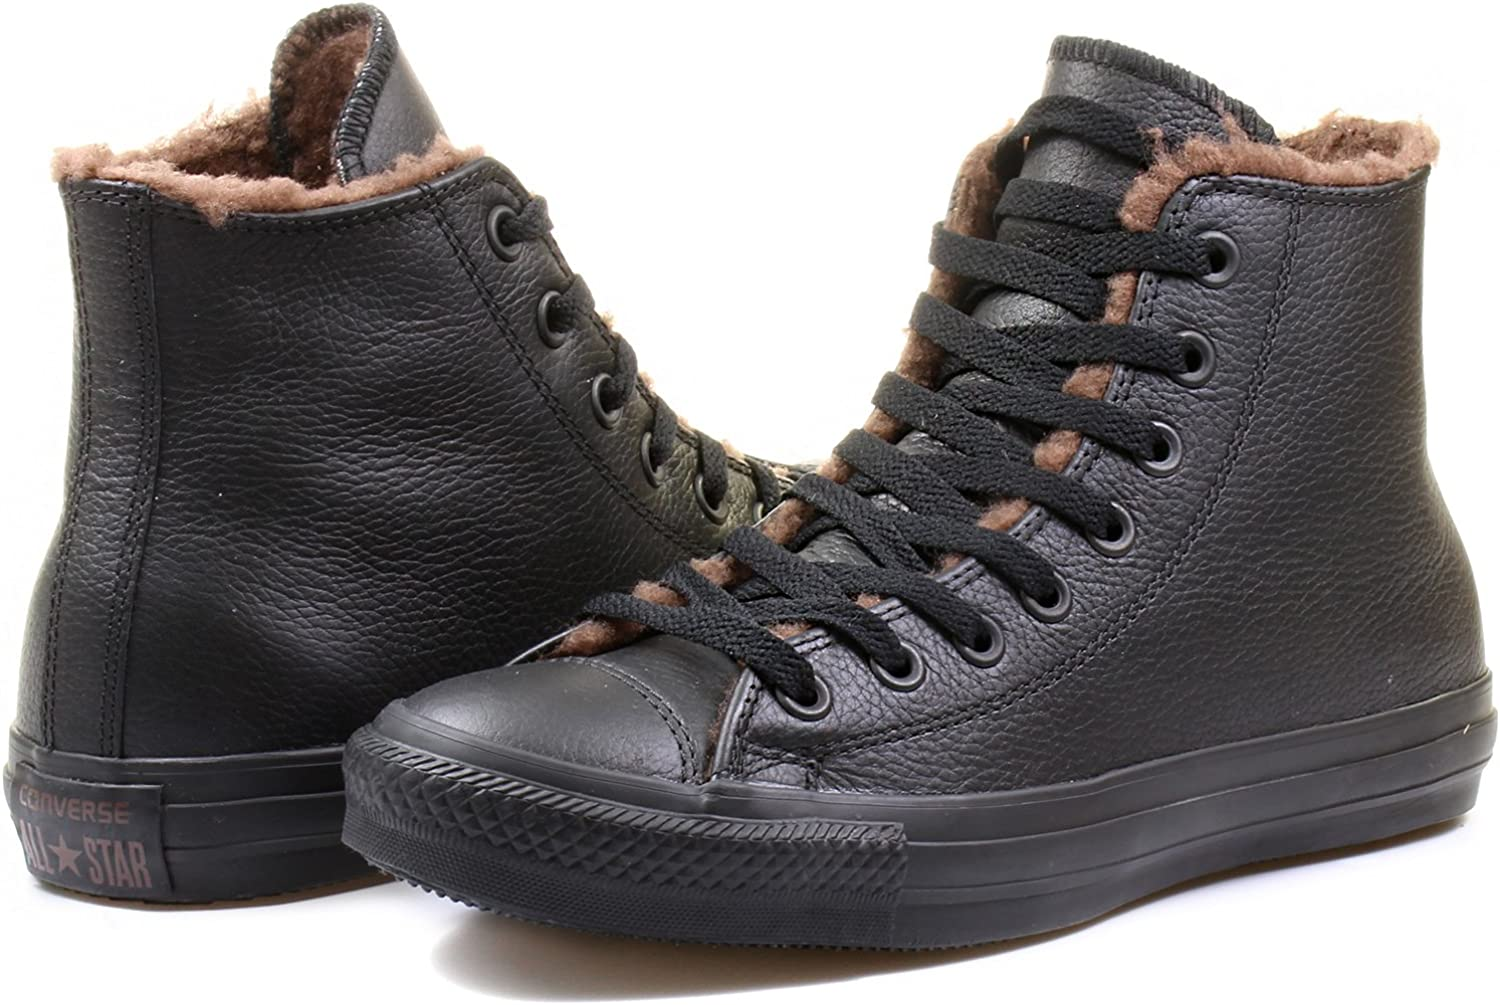 Converse Chuck Taylor Leather Fur Lined